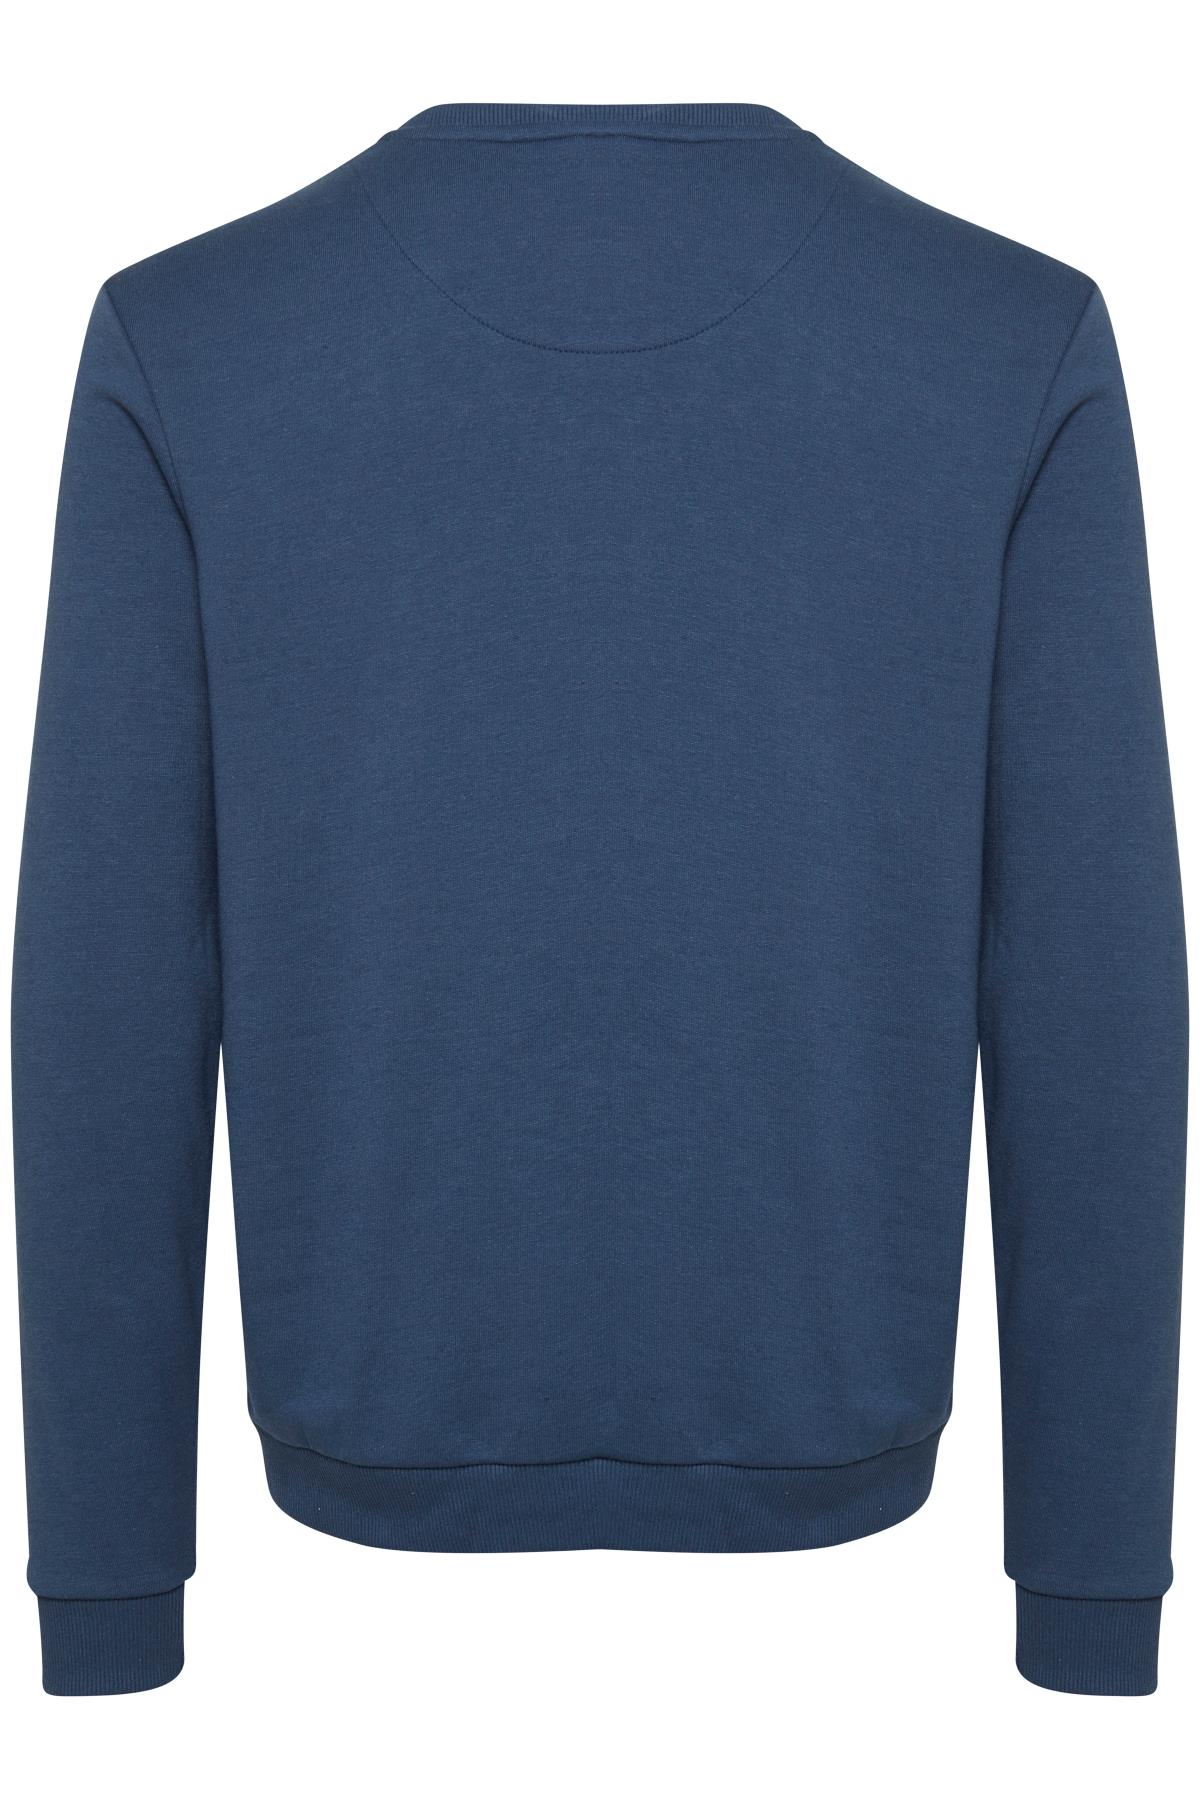 Denim Blue Sweatshirt – Køb Denim Blue Sweatshirt fra str. S-3XL her